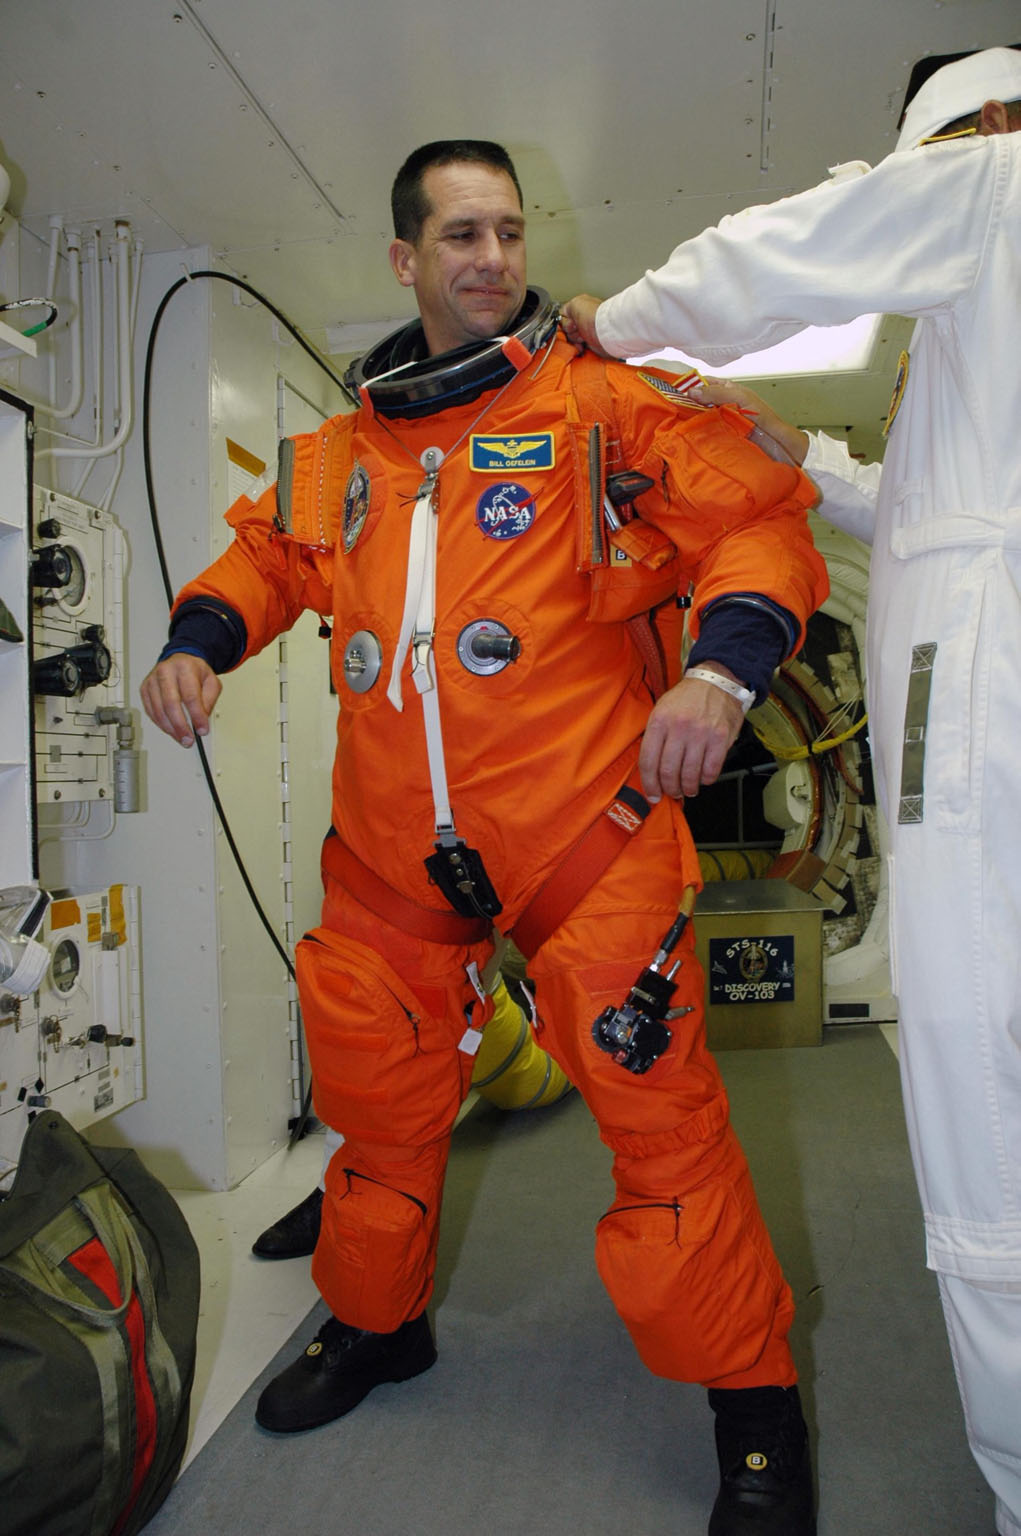 KENNEDY SPACE CENTER, FLA. -- In the white room on Launch Pad 39B, STS-116 Pilot William Oefelein is helped with his gear before entering Space Shuttle Discovery. The mission crew is taking part in a simulated launch countdown, part of the terminal countdown demonstration test that includes prelaunch preparations. The STS-116 mission is No. 20 to the International Space Station and construction flight 12A.1. The mission payload is the SPACEHAB module, the P5 integrated truss structure and other key components. Launch is scheduled for no earlier than Dec. 7. Photo credit: NASA/Amanda Diller